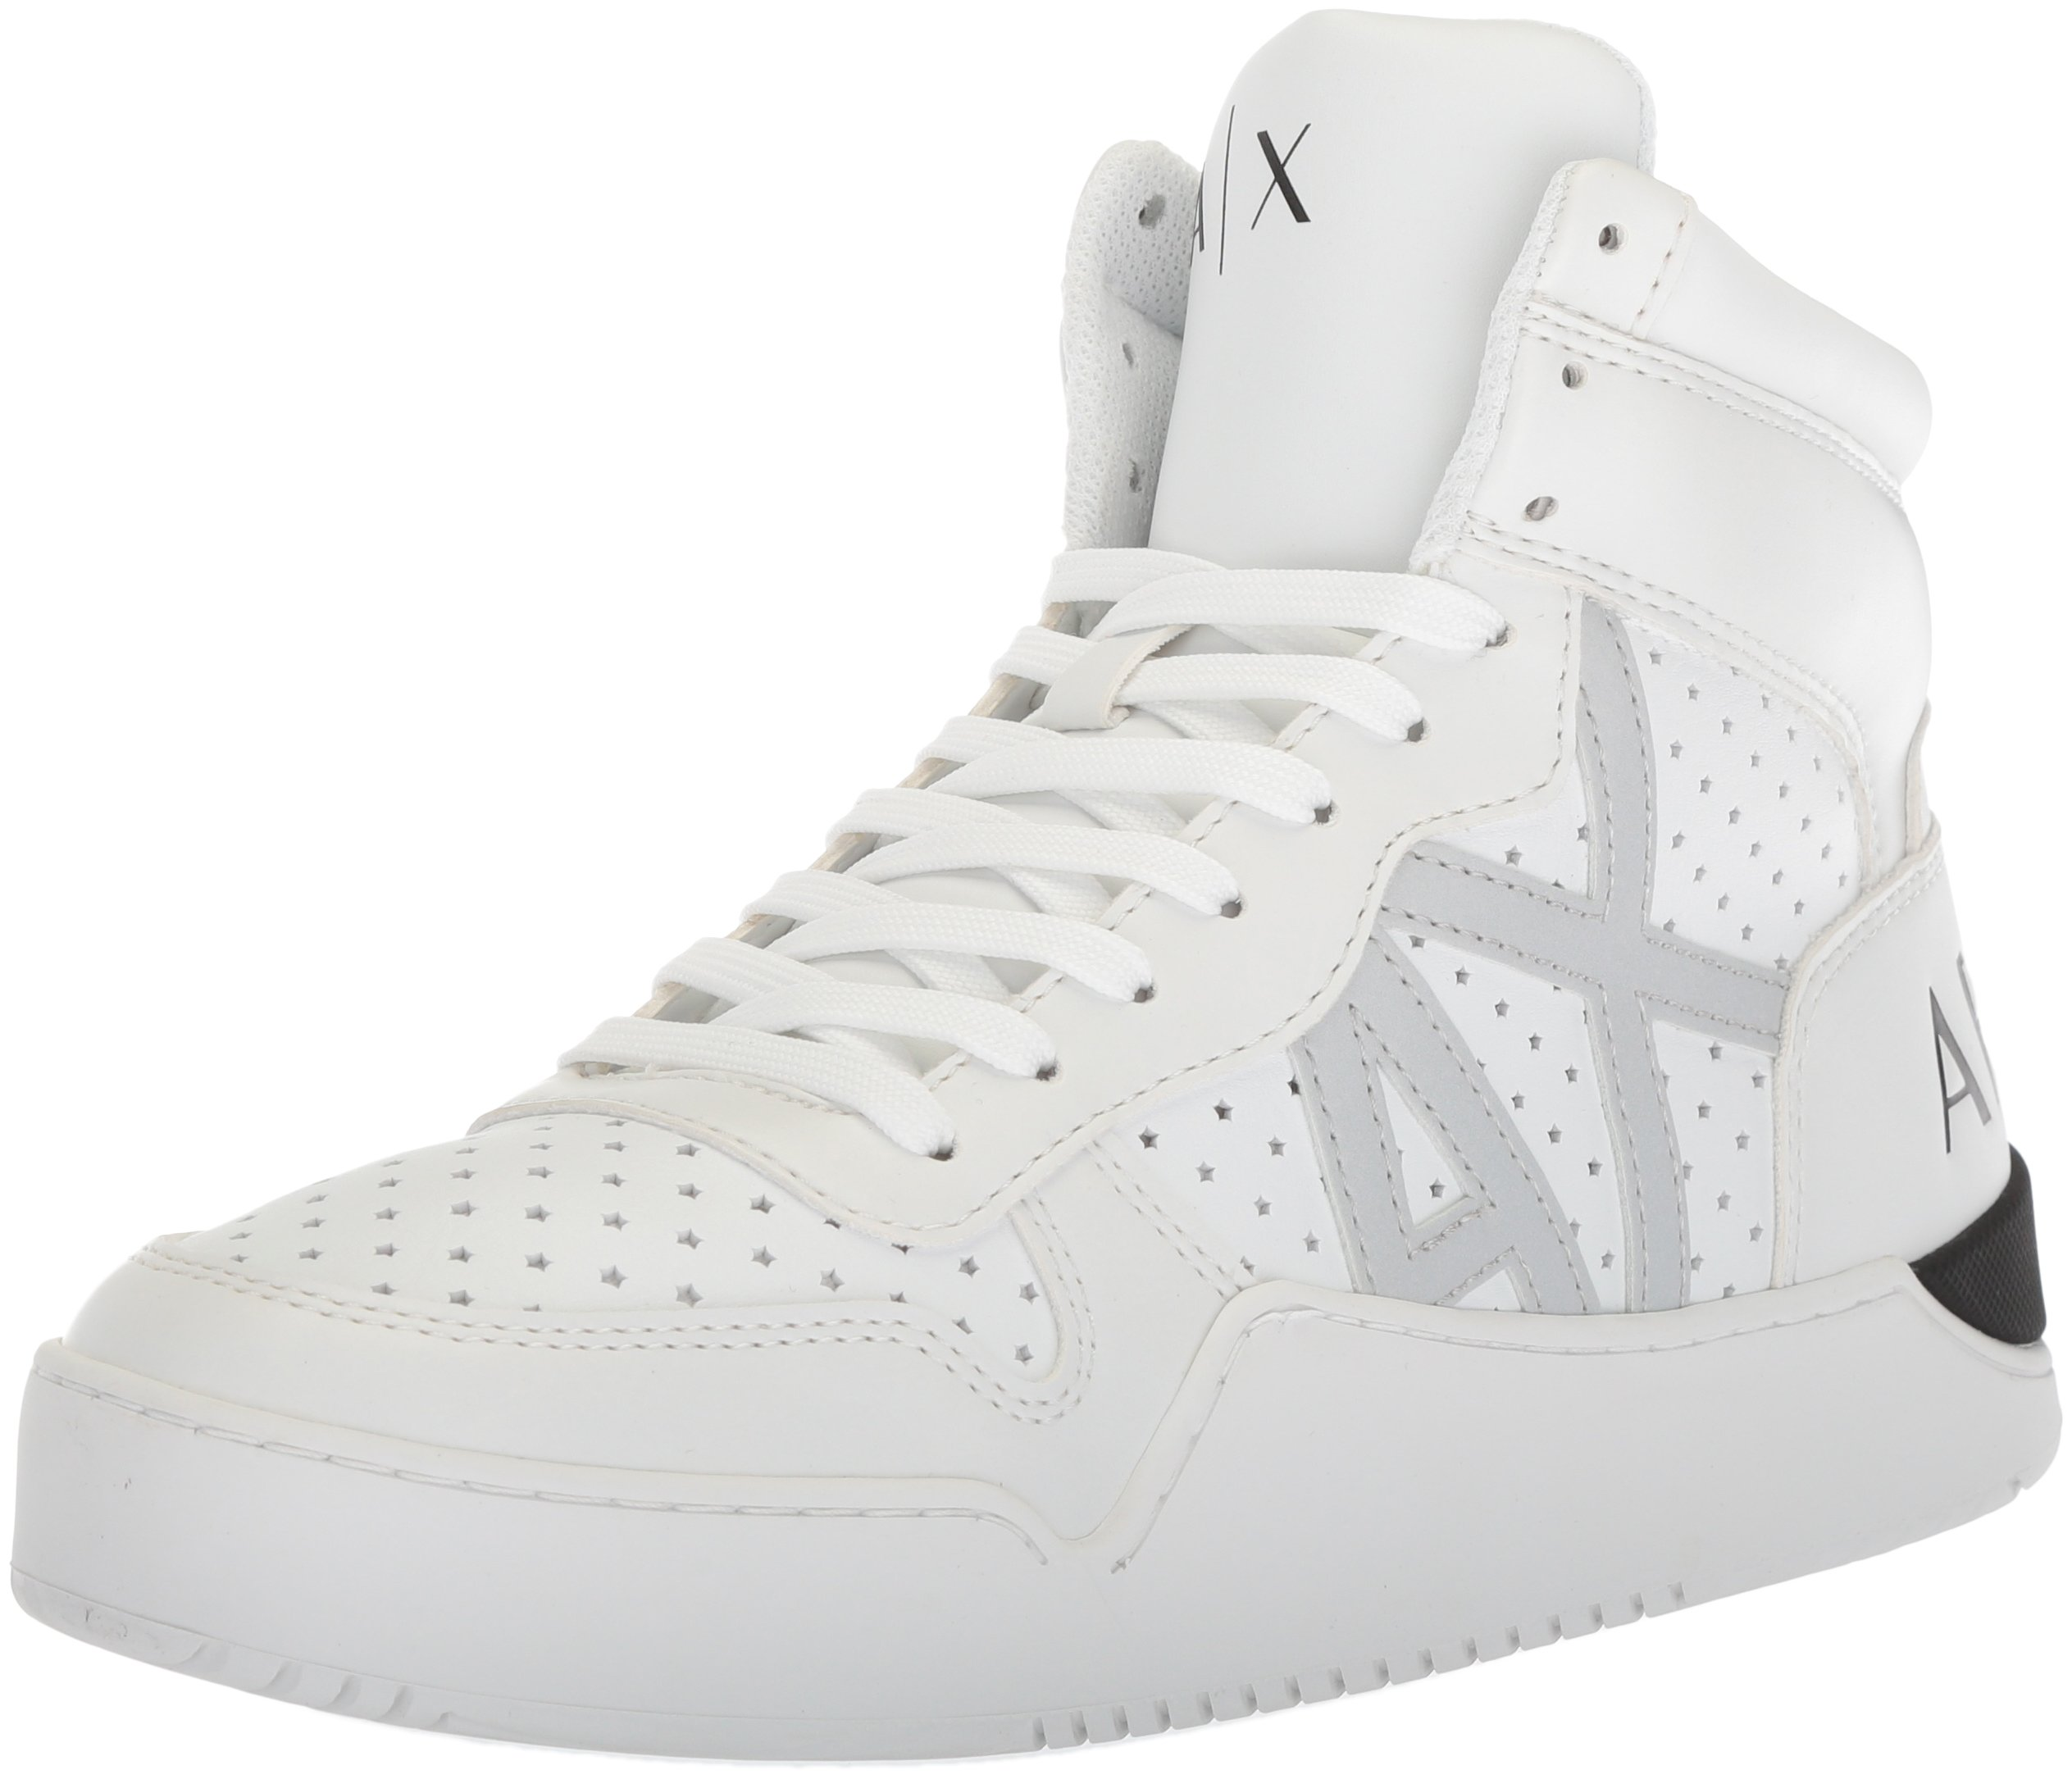 A|X Armani Exchange Men's High Top Perforated Lace up Sneaker, White, 9 Medium US